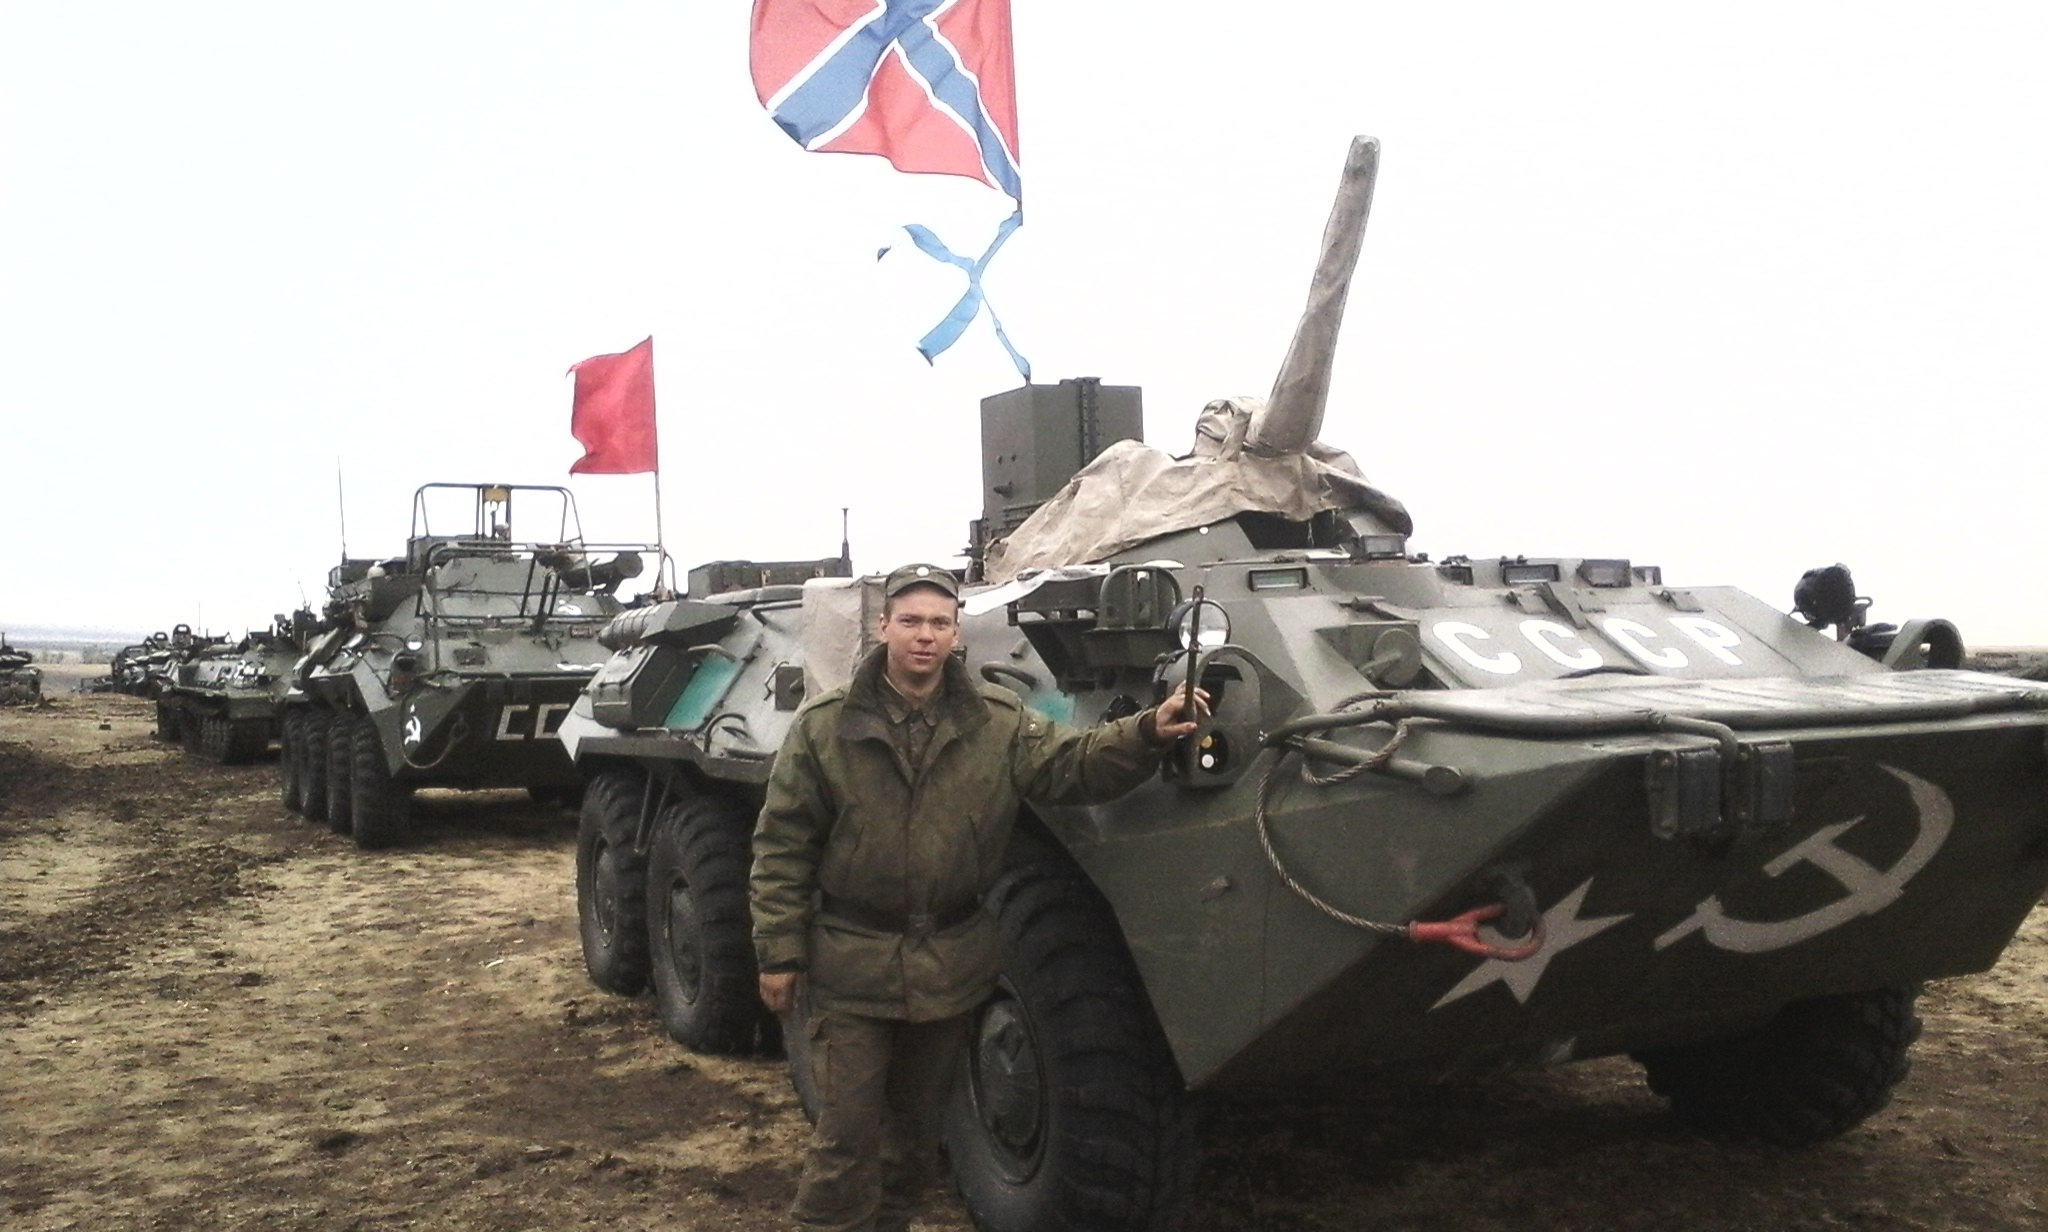 Photograph from the account of Nikolai Dugaev, showing military equipment with the Russian naval ensign and naval jack. This is not the same as the flag of Novorossiya.